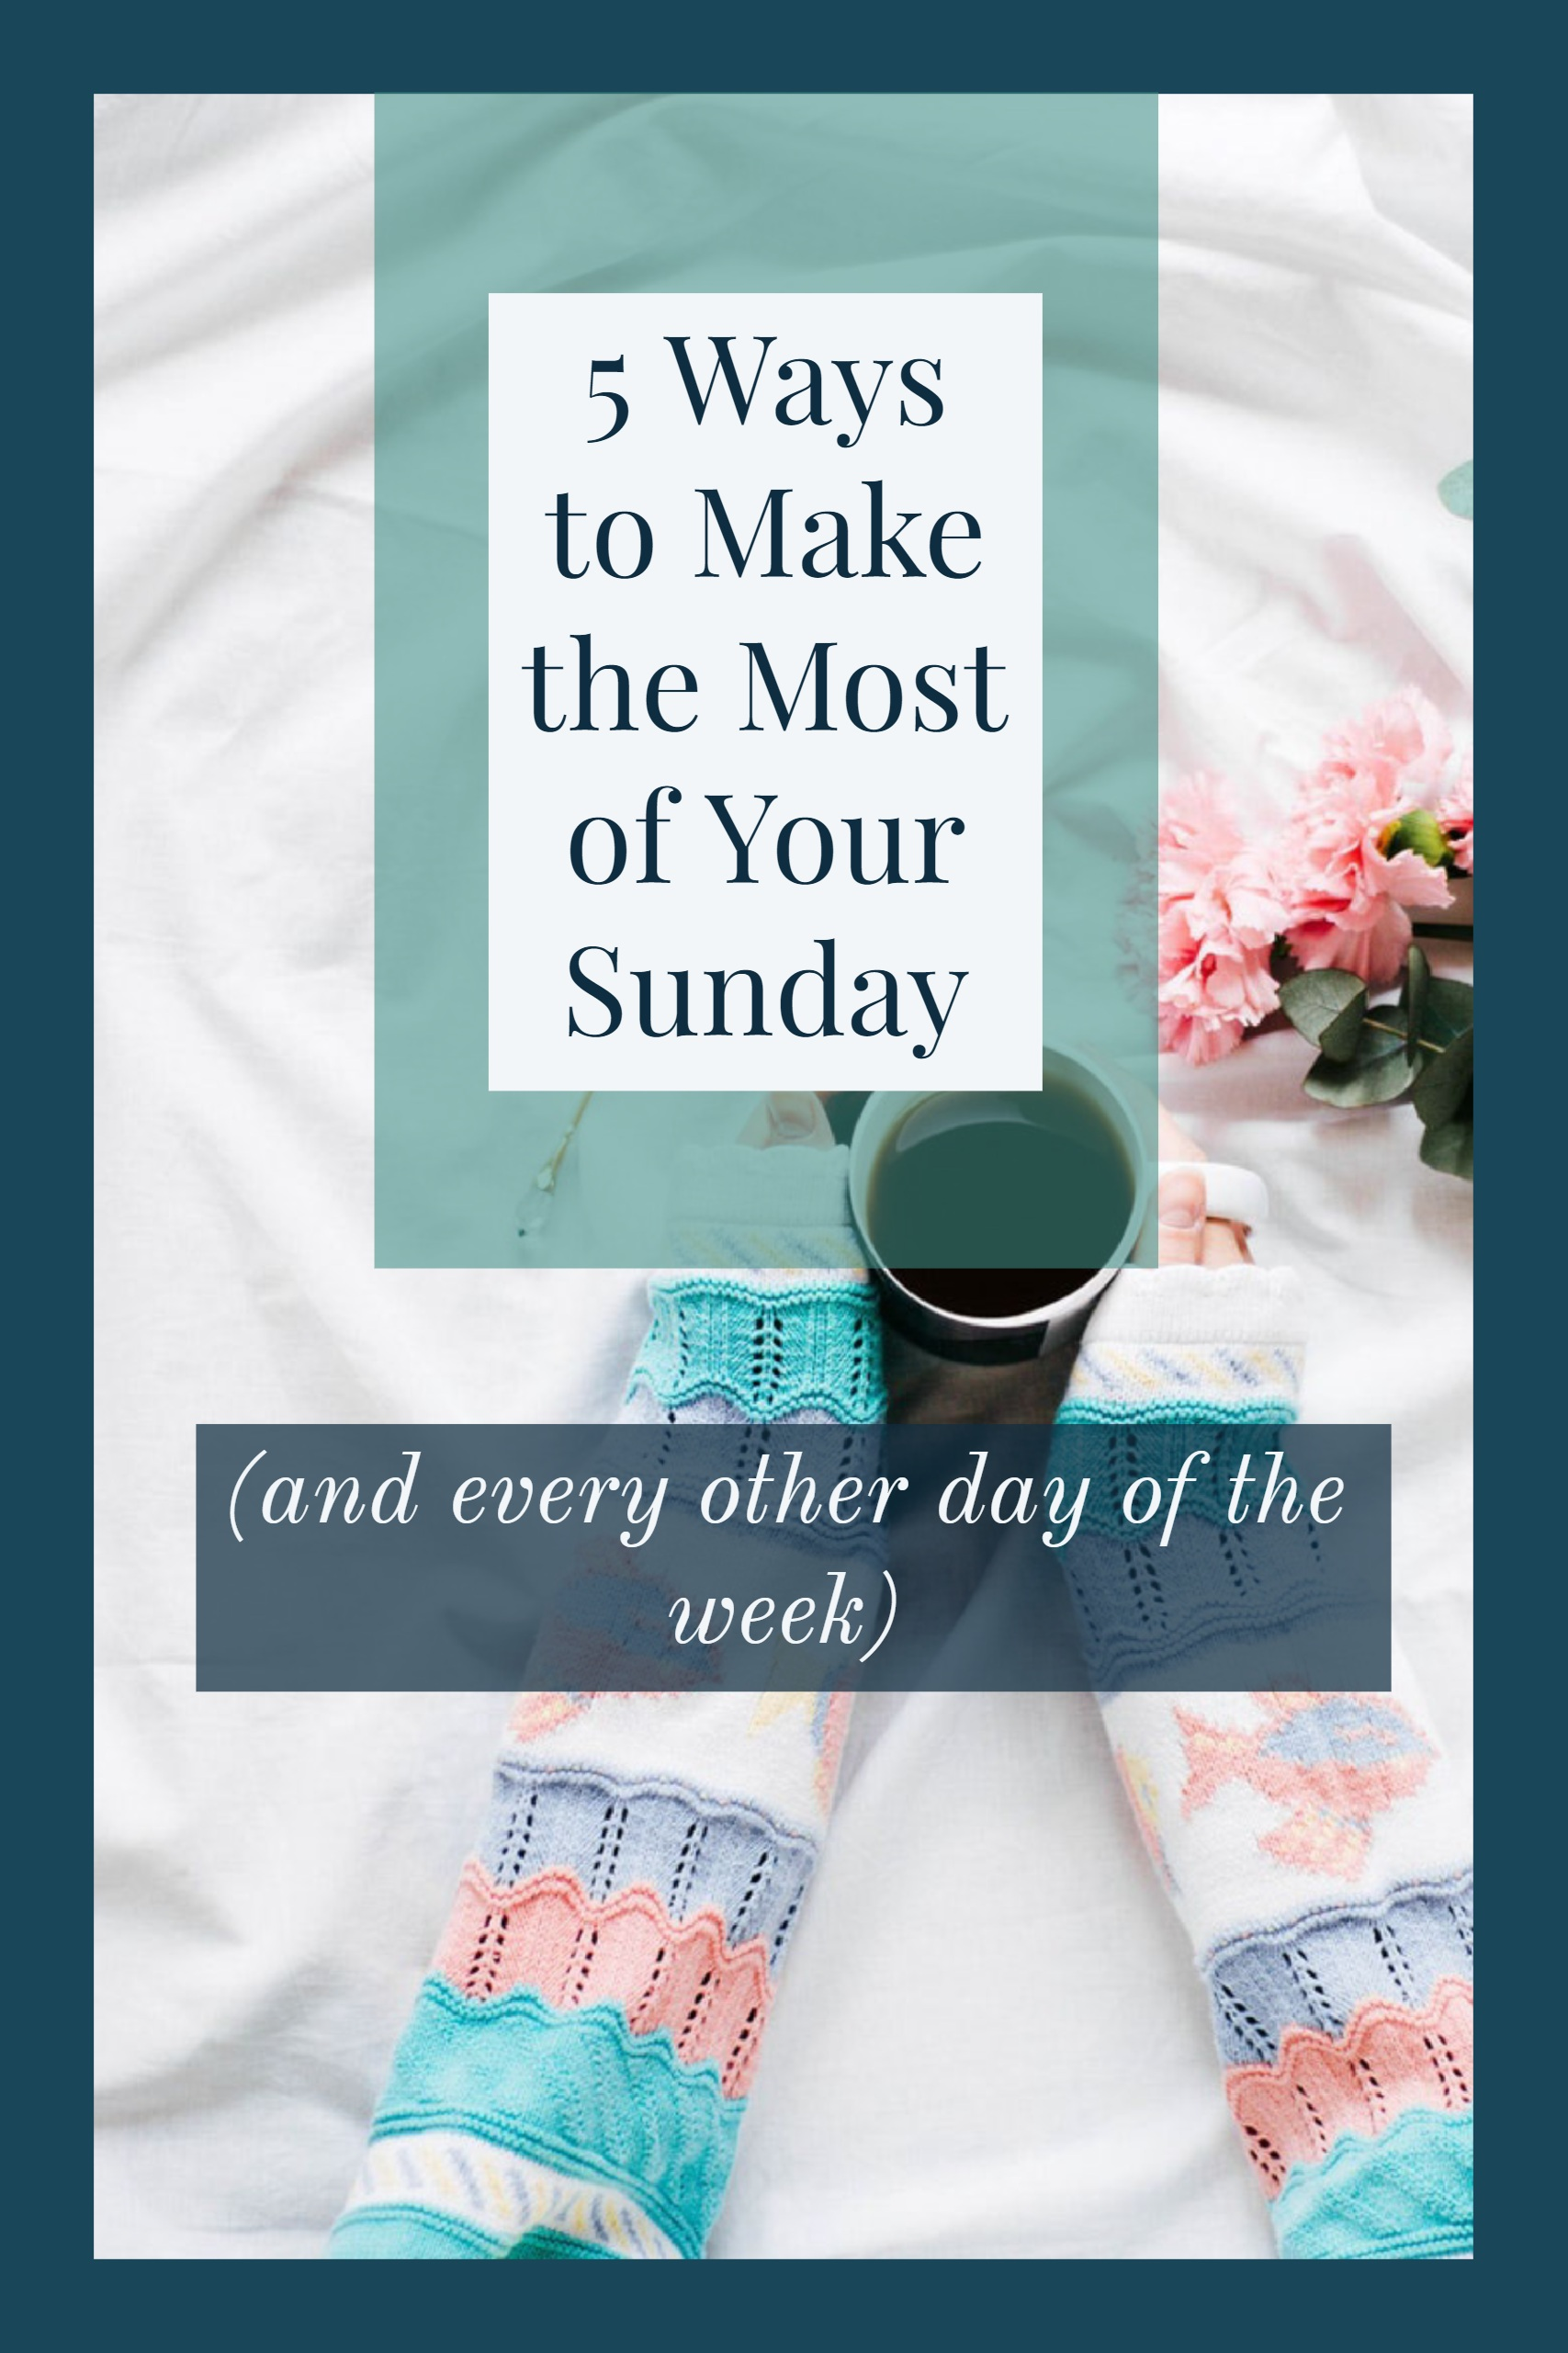 5 Ways to Make the Most of Your Sunday